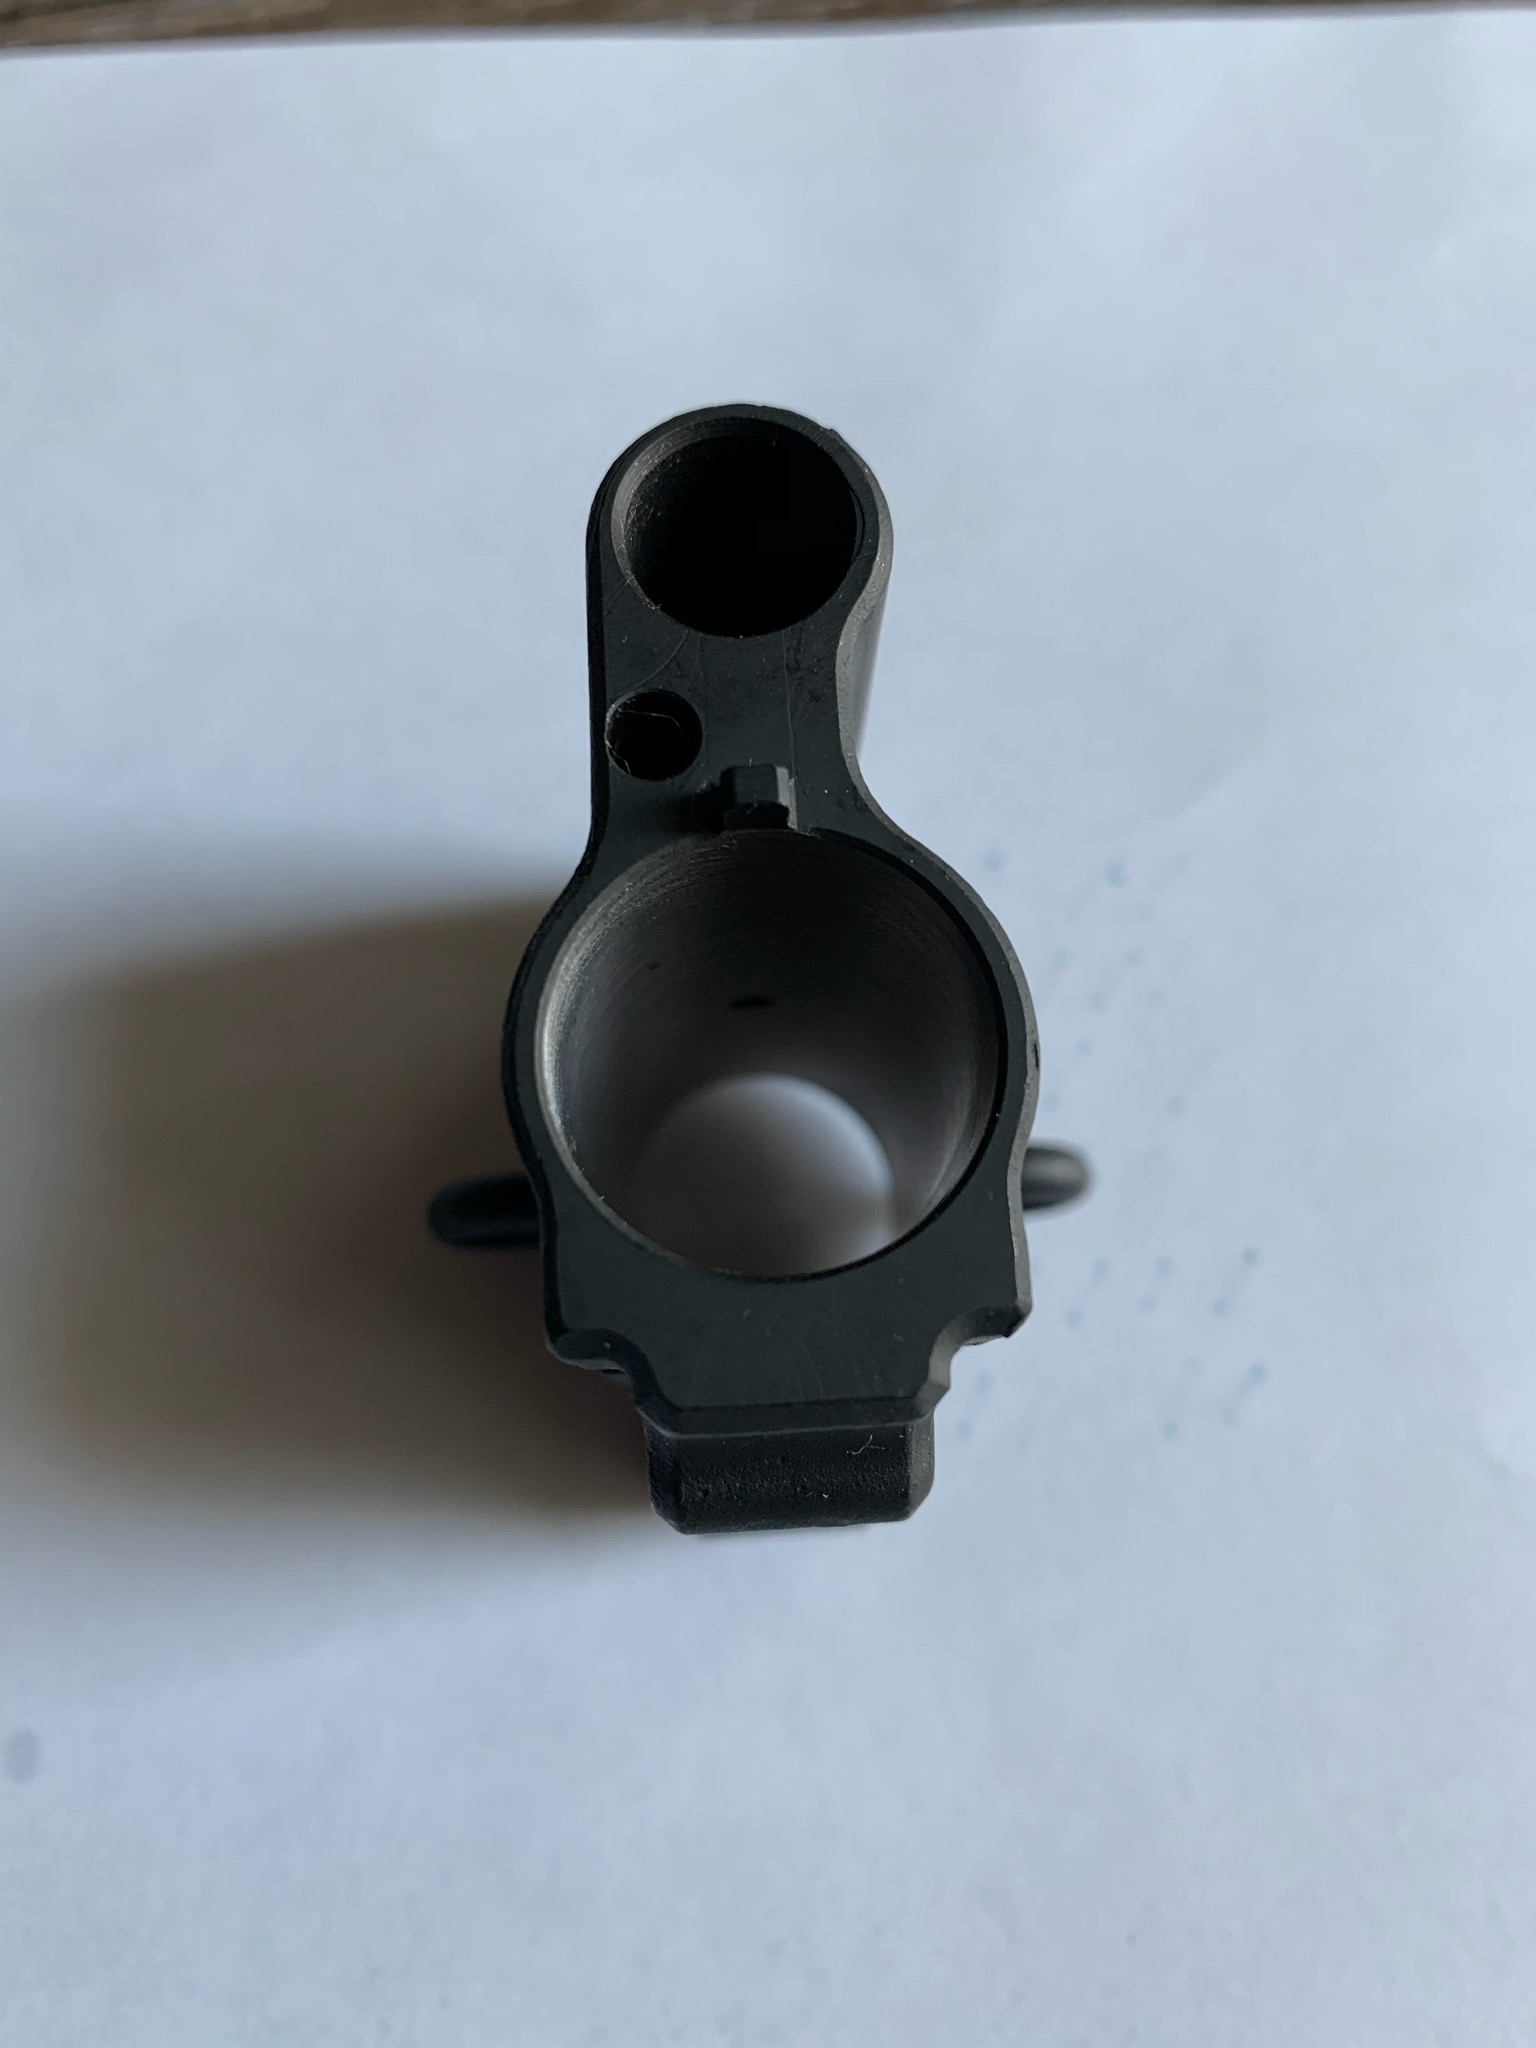 WTS: HK417 slim-line stock & 416 parts (SOLD)-img_4129.heic.jpeg